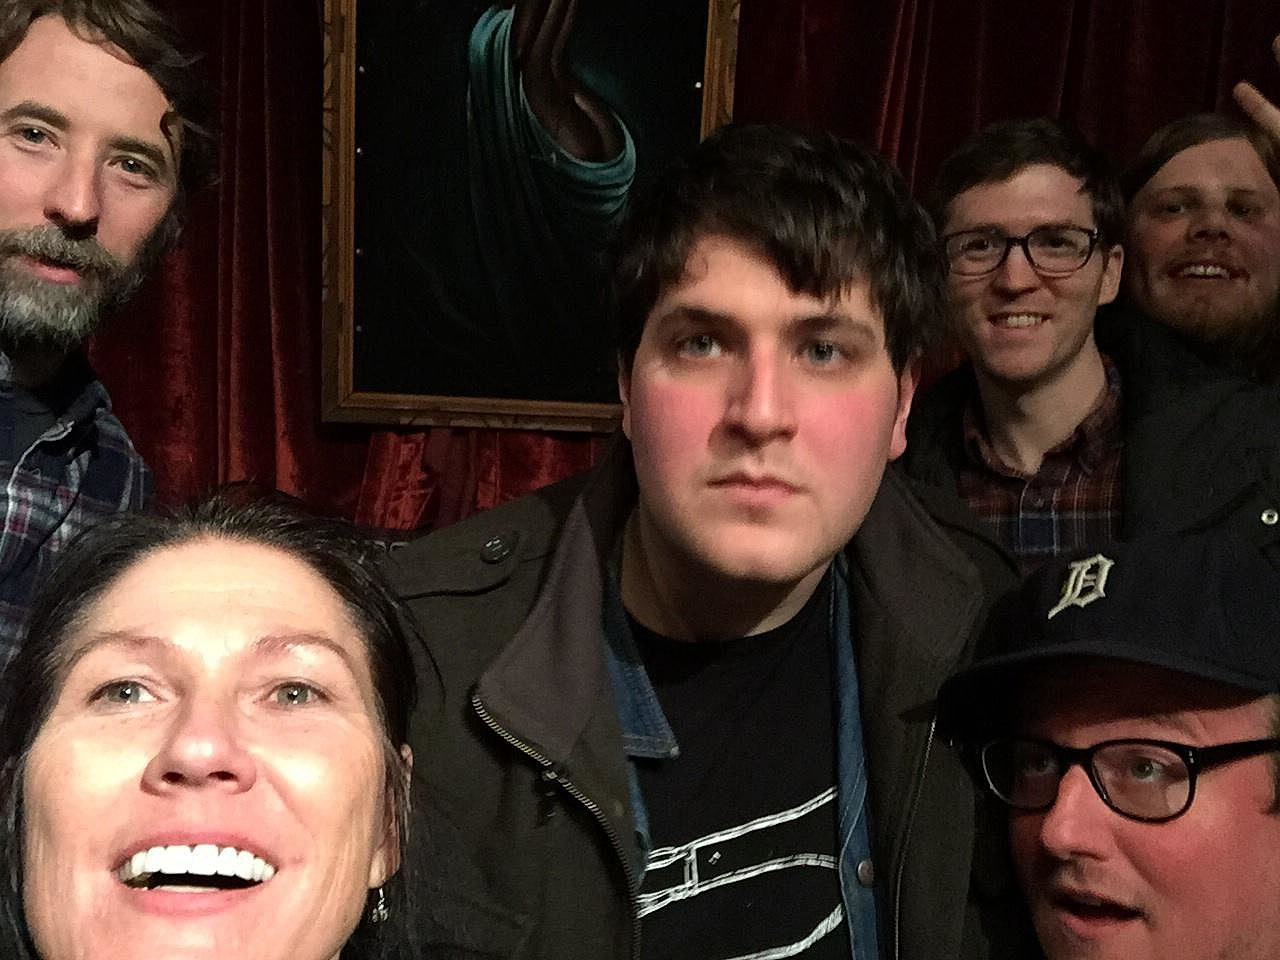 Kelley with Protomartyr back in 2014